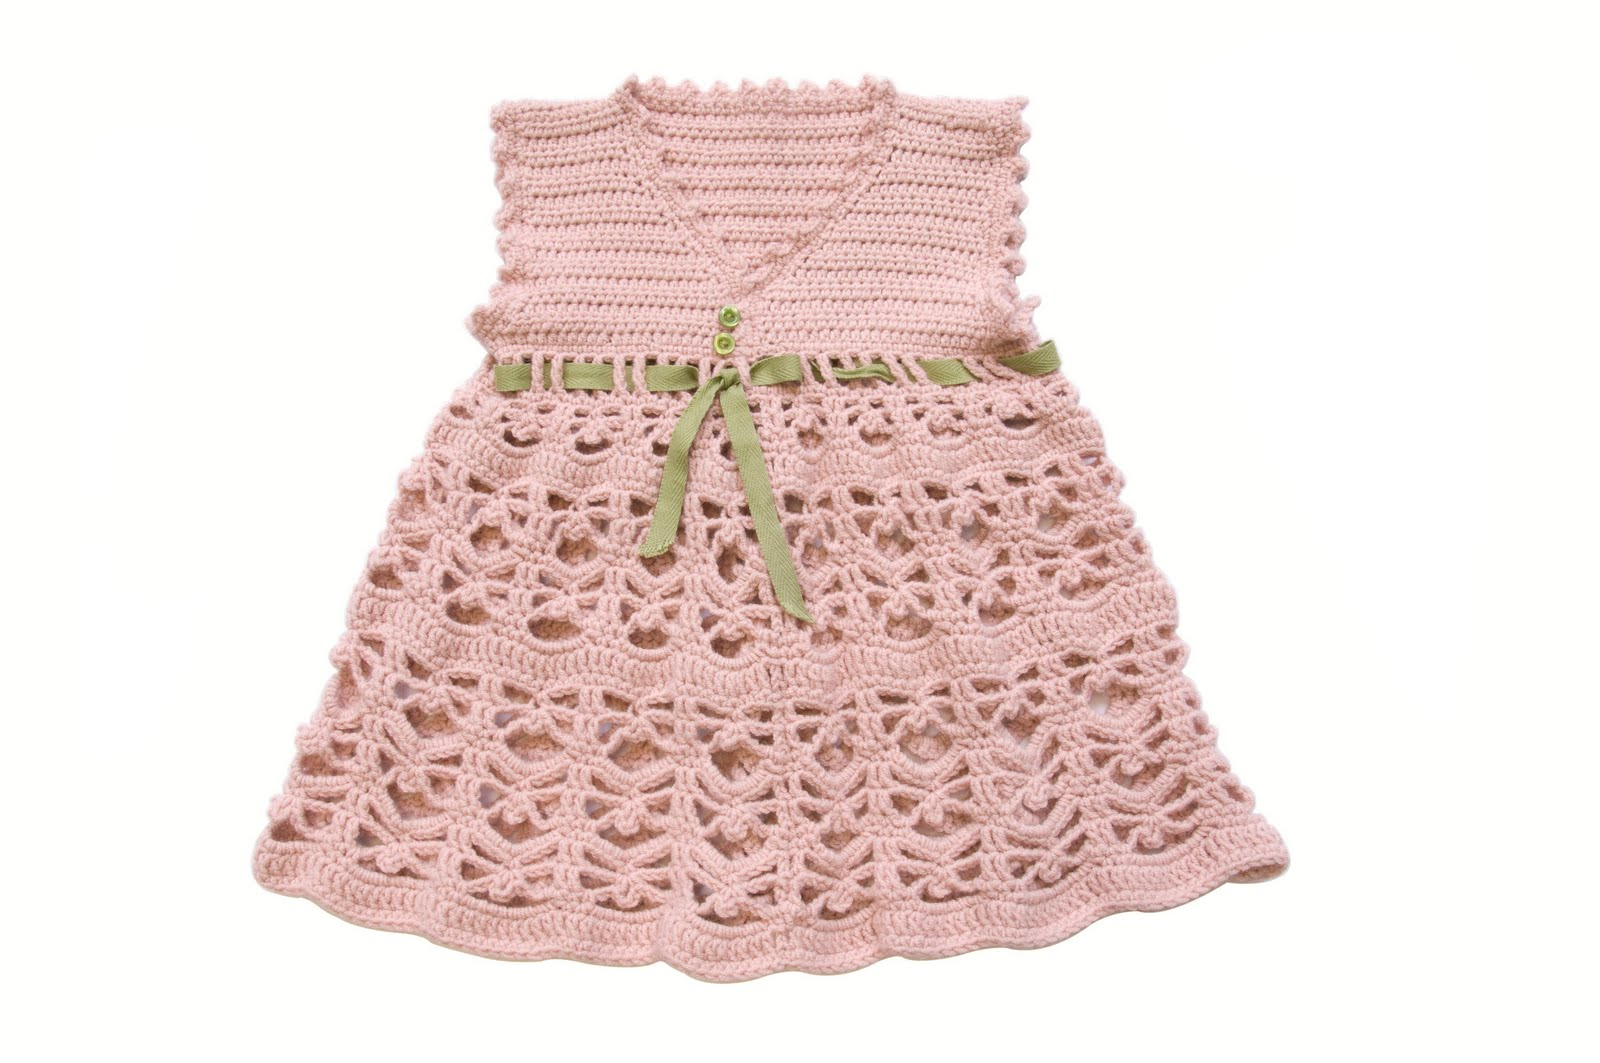 CROCHET DRESS FREE GIRL PATTERN – Crochet Patterns